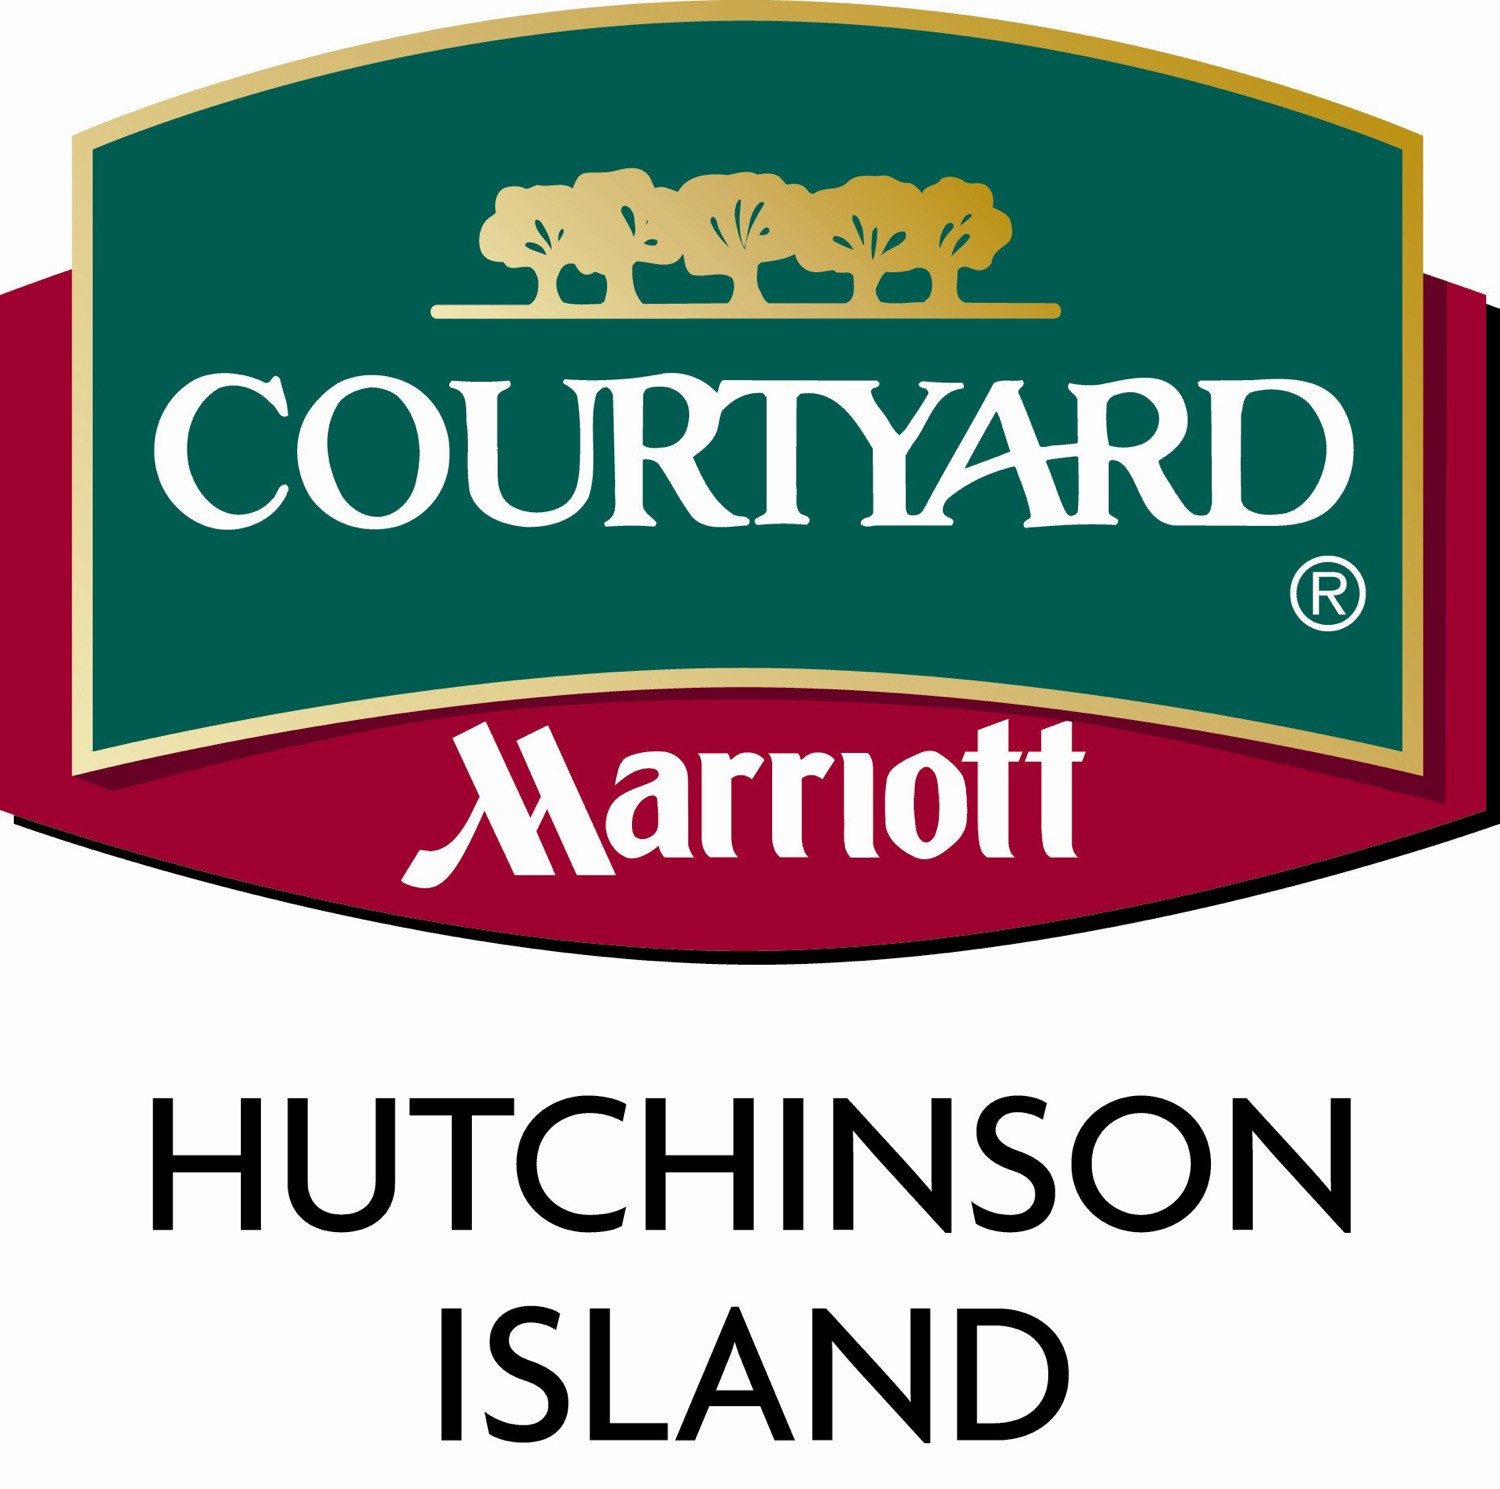 Courtyard by Marriott Hutchinson